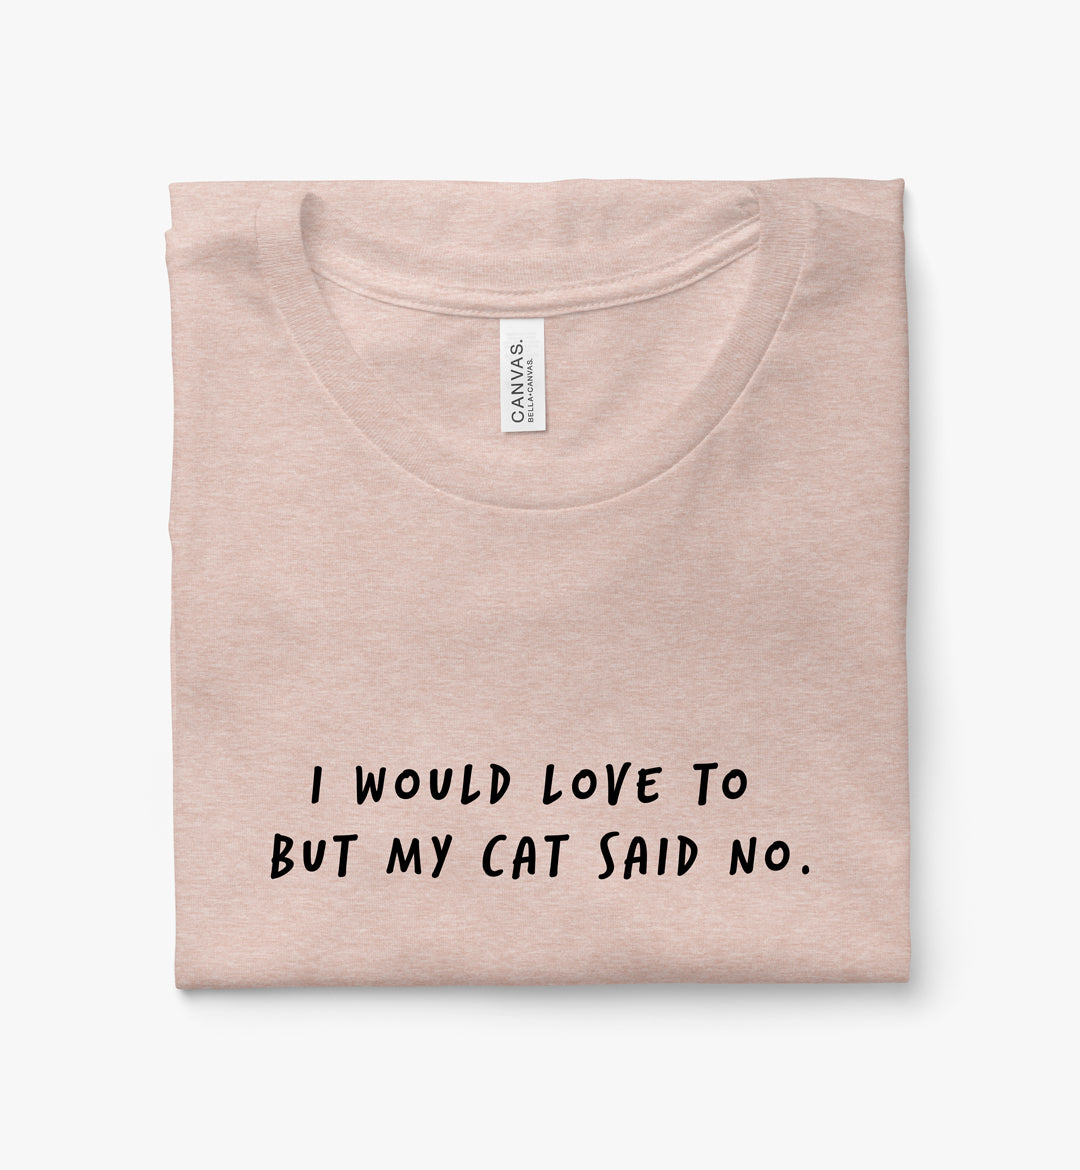 I Would Love to but My Cat Said No